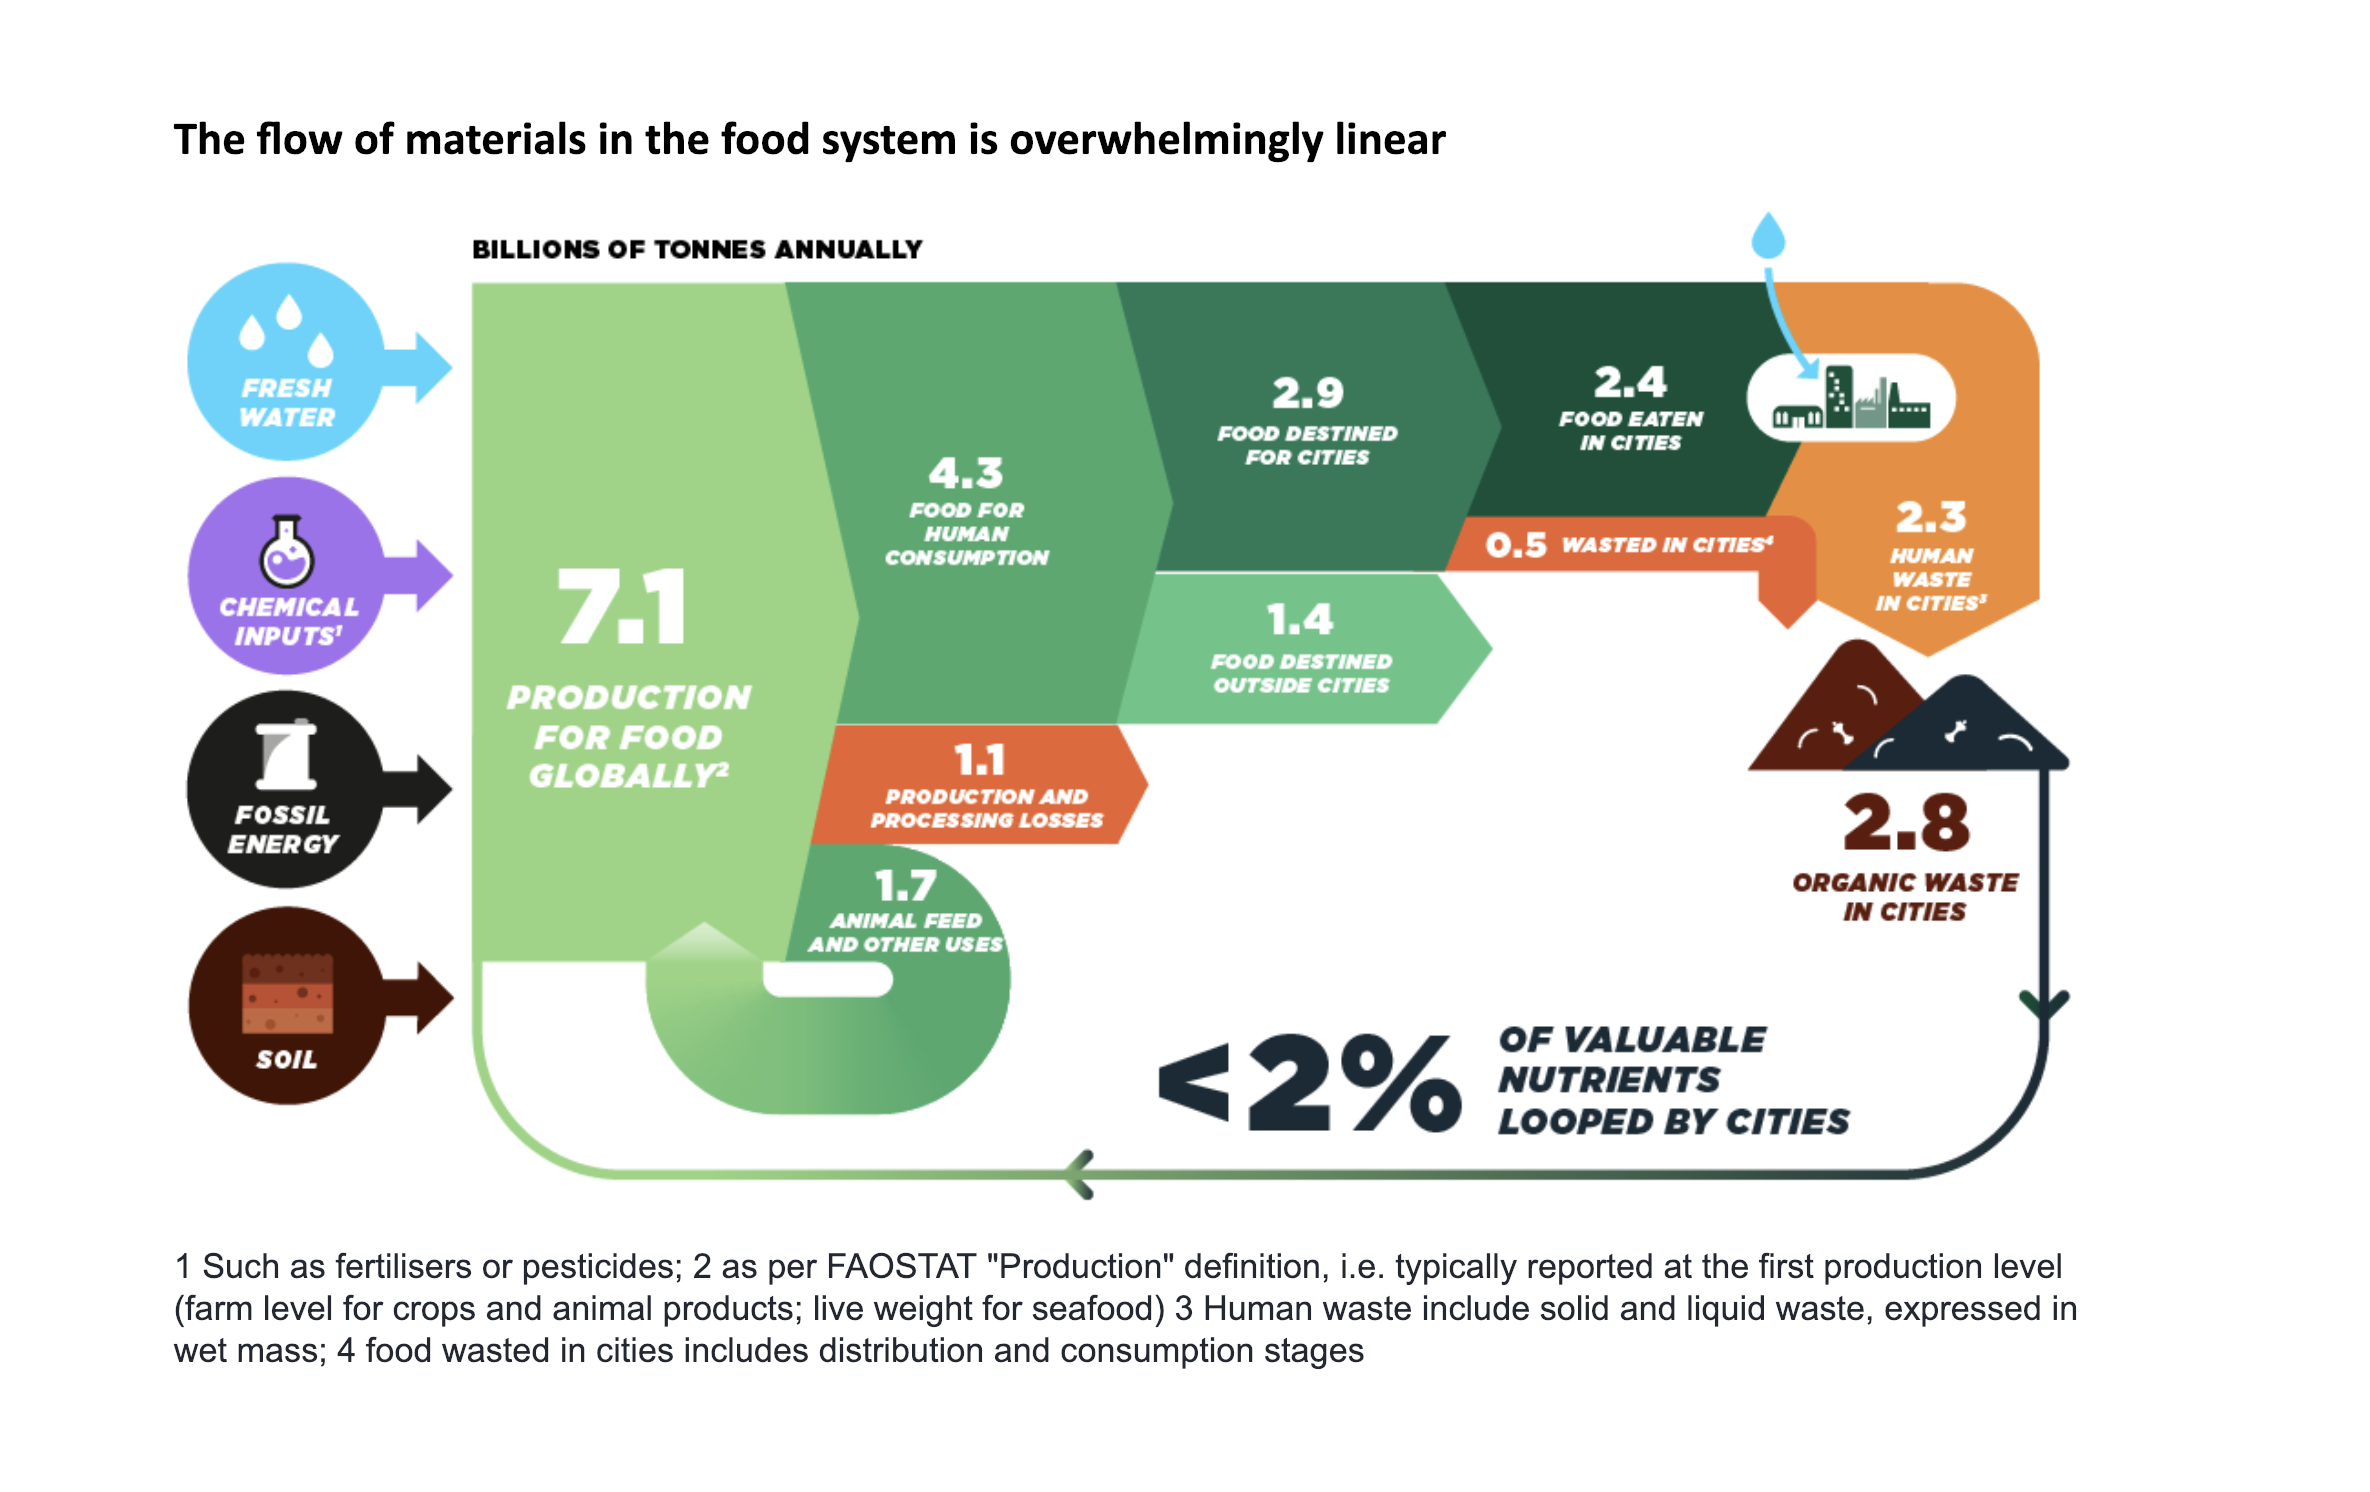 Only 2% of the nutritional value in our food is recycled